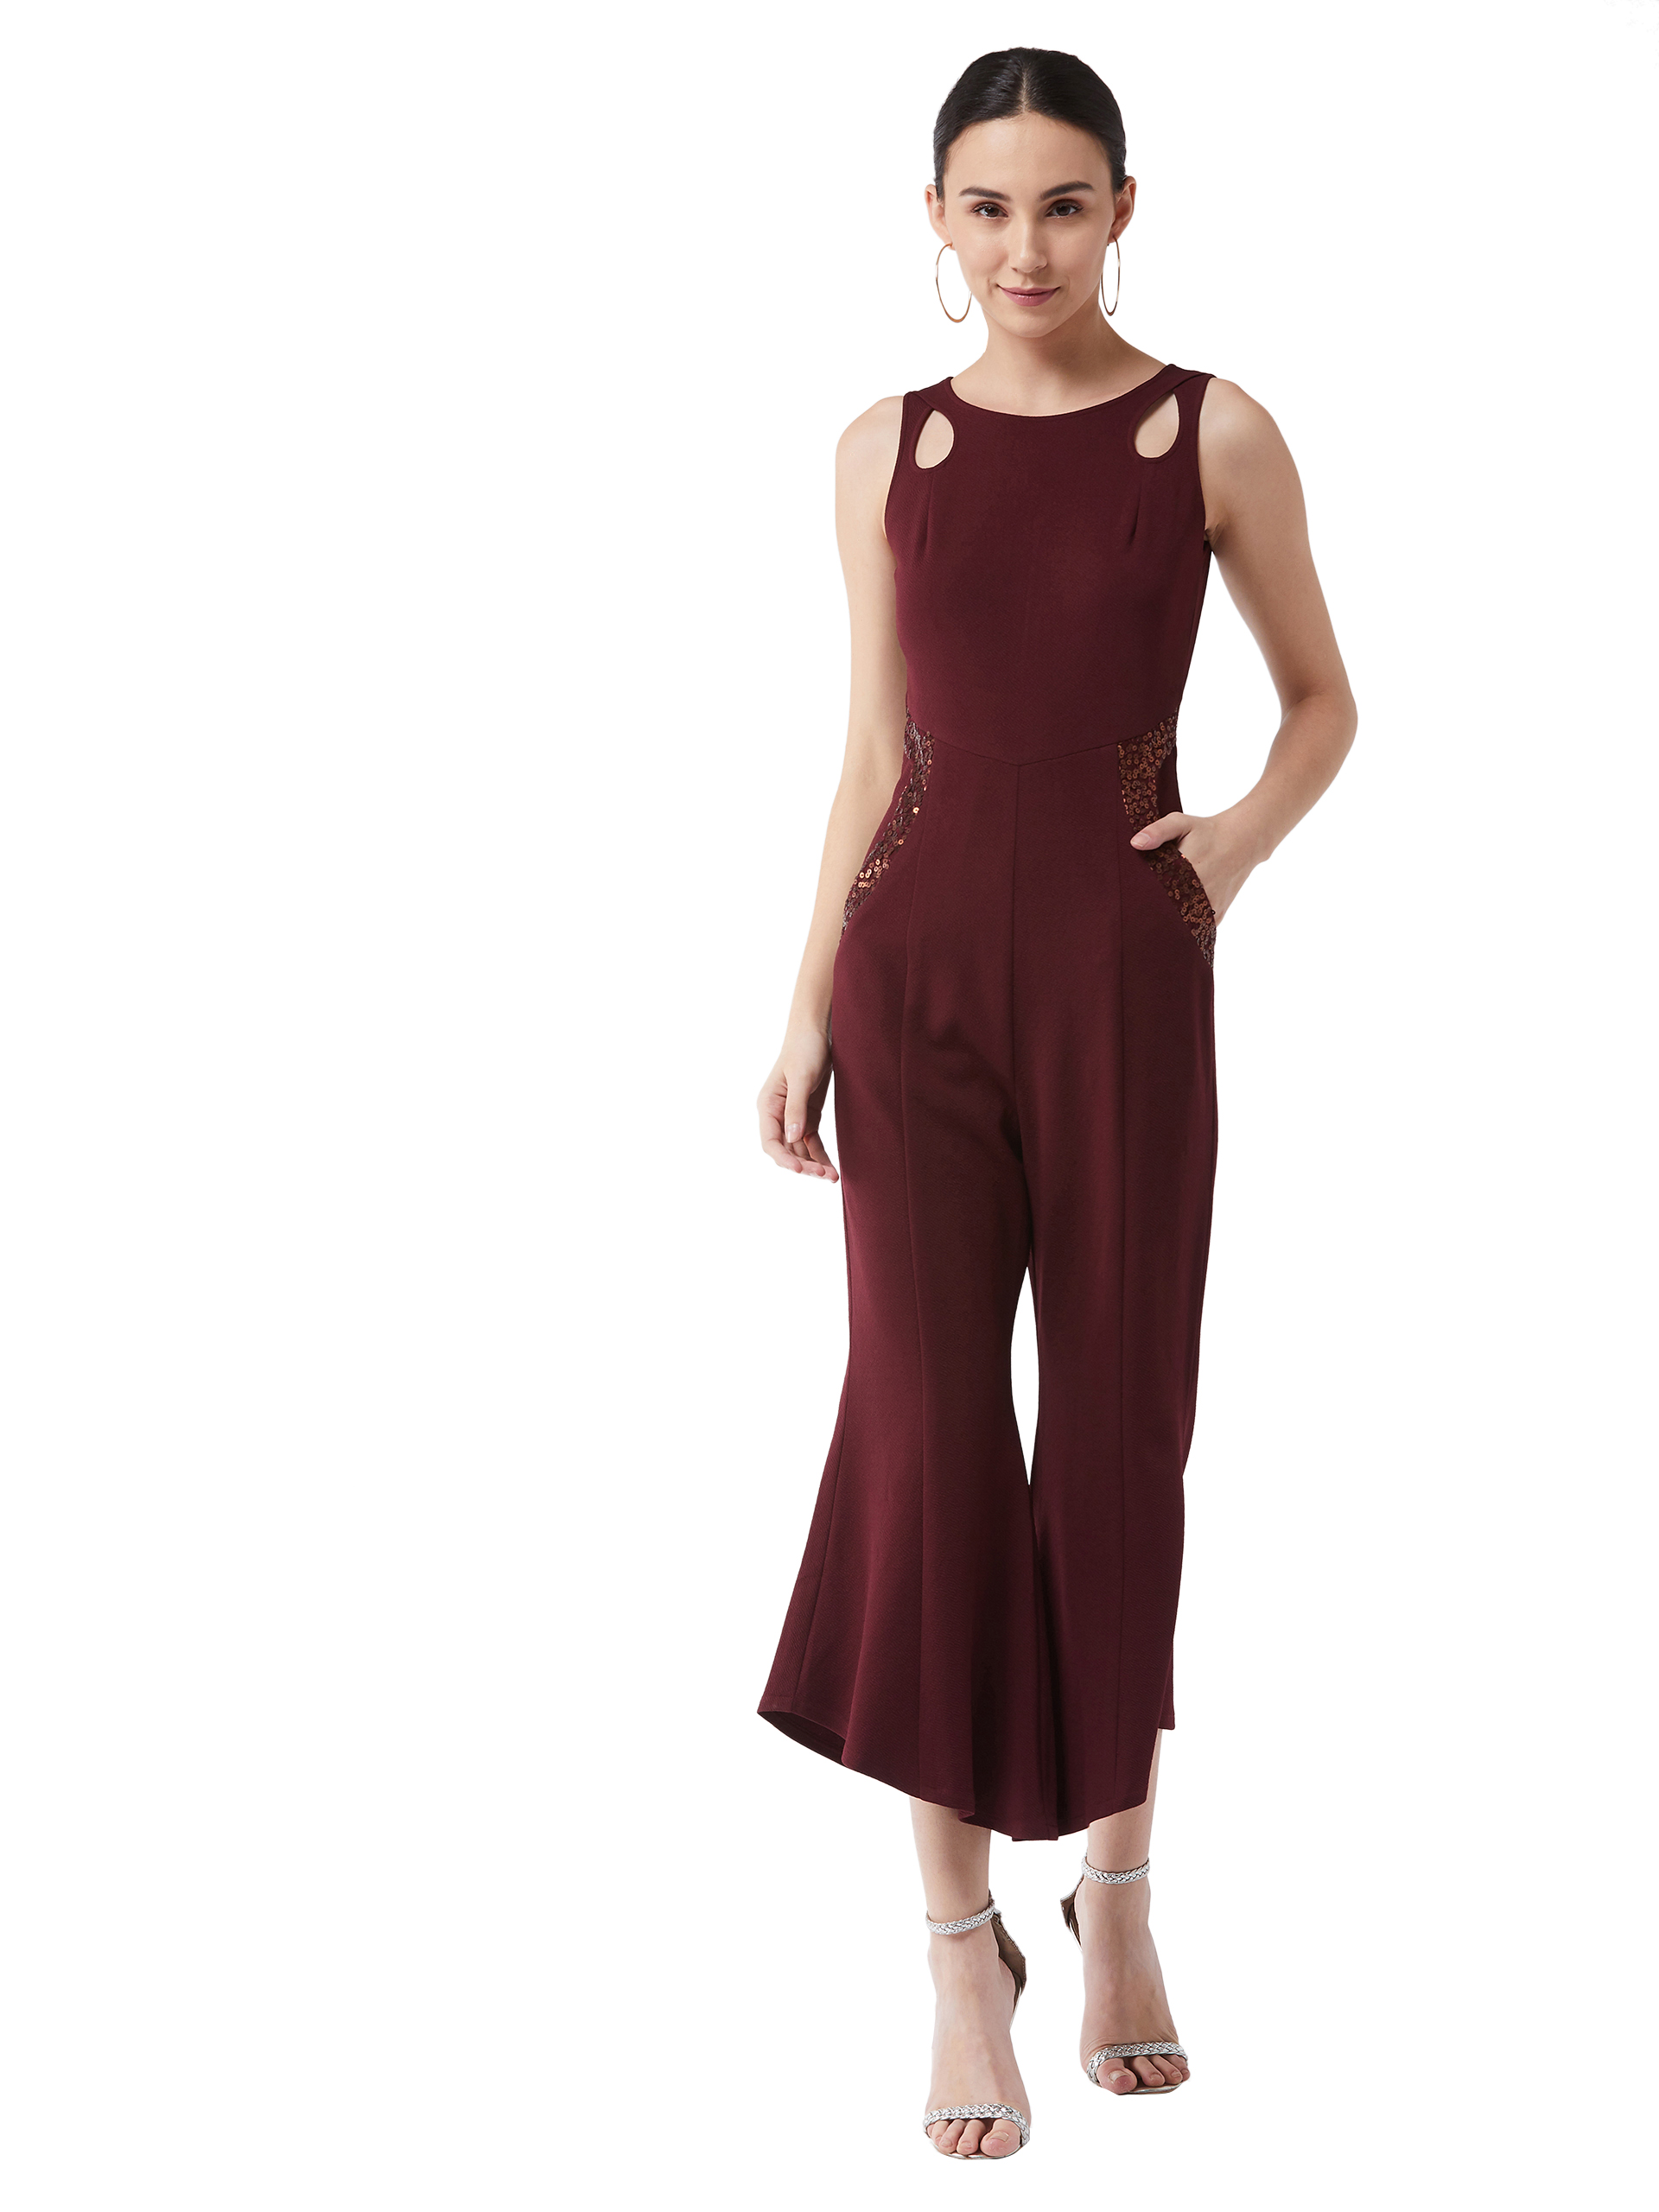 MISS CHASE |  Wine Solid Slim Fit Round Neck Sleeveless Regular Length Bell Bottom Jumpsuit